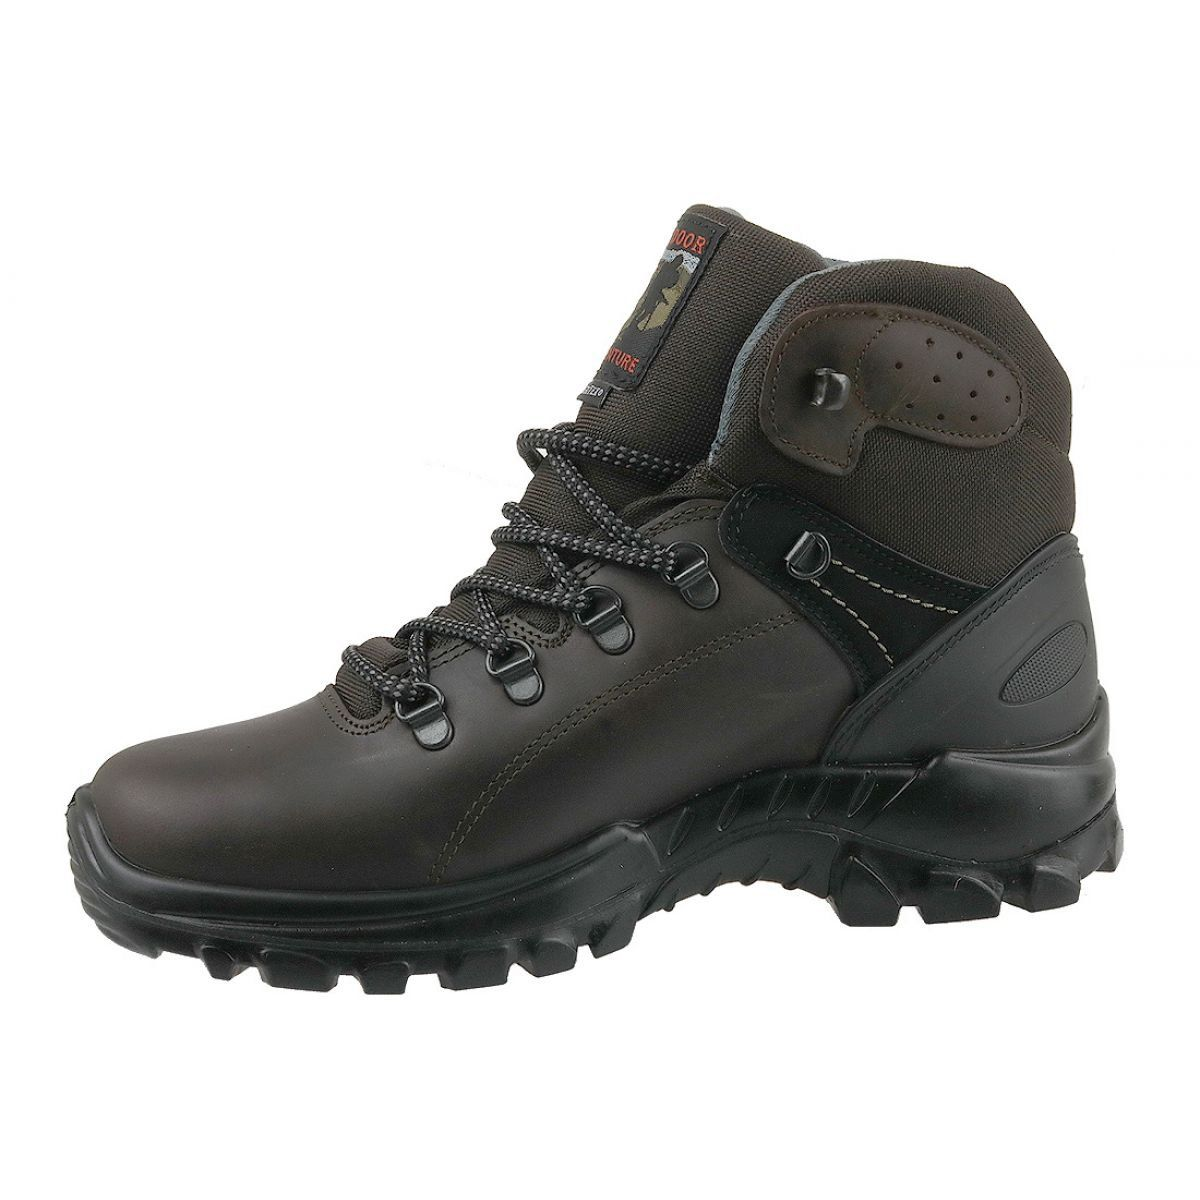 Buty Grisport Marrone M 13326d1g Brazowe Hiking Boots Boots Shoes